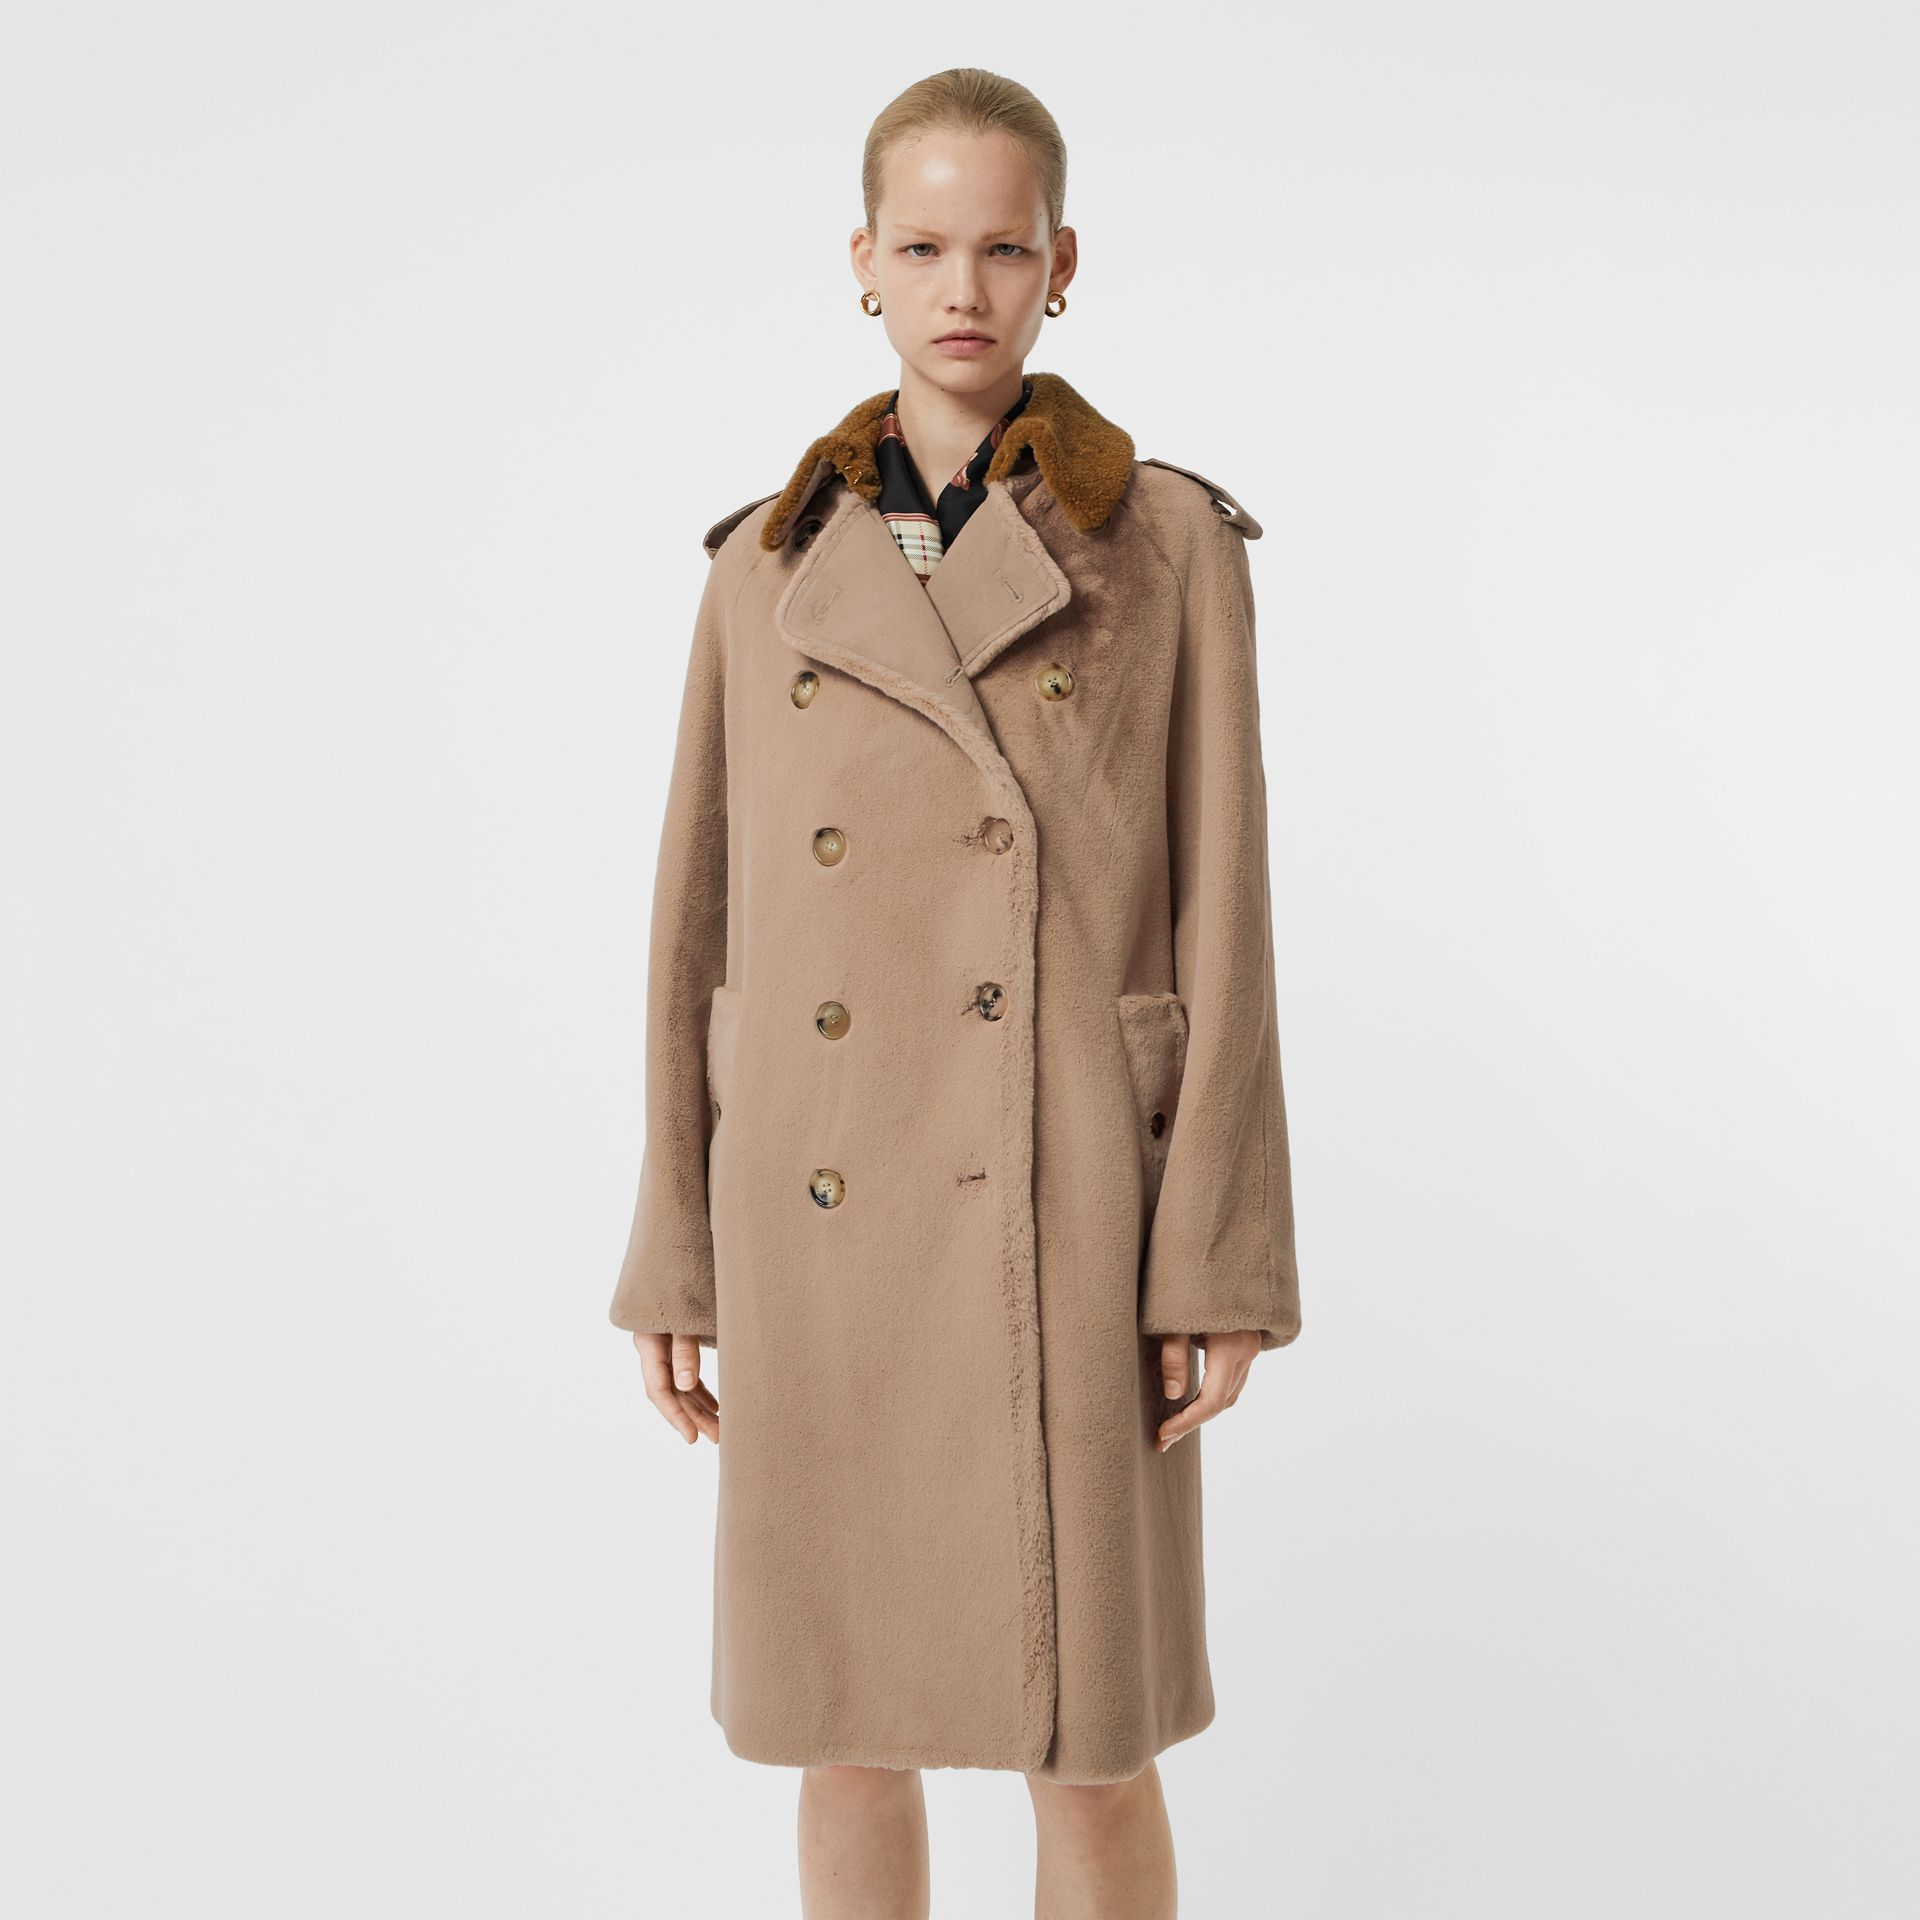 Shearling Trim Faux Fur Trench Coat in Taupe - Women | Burberry United Kingdom - gallery image 6